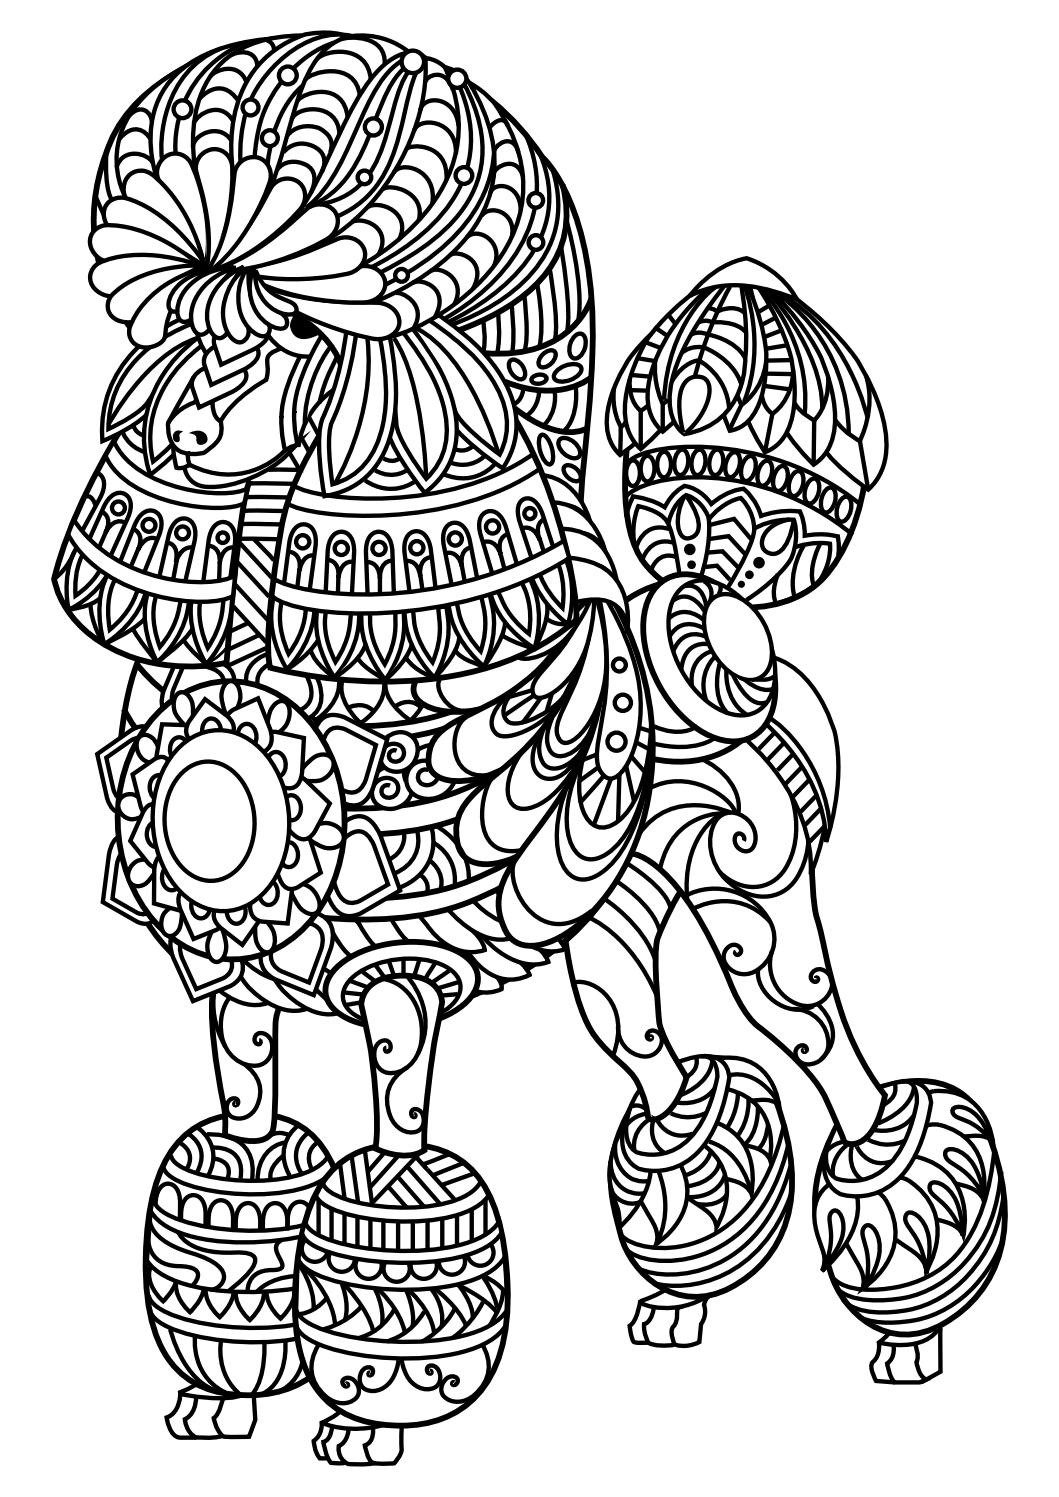 1059x1497 Animal Coloring Pages Pdf Adult Coloring, Coloring Books And Dog Cat